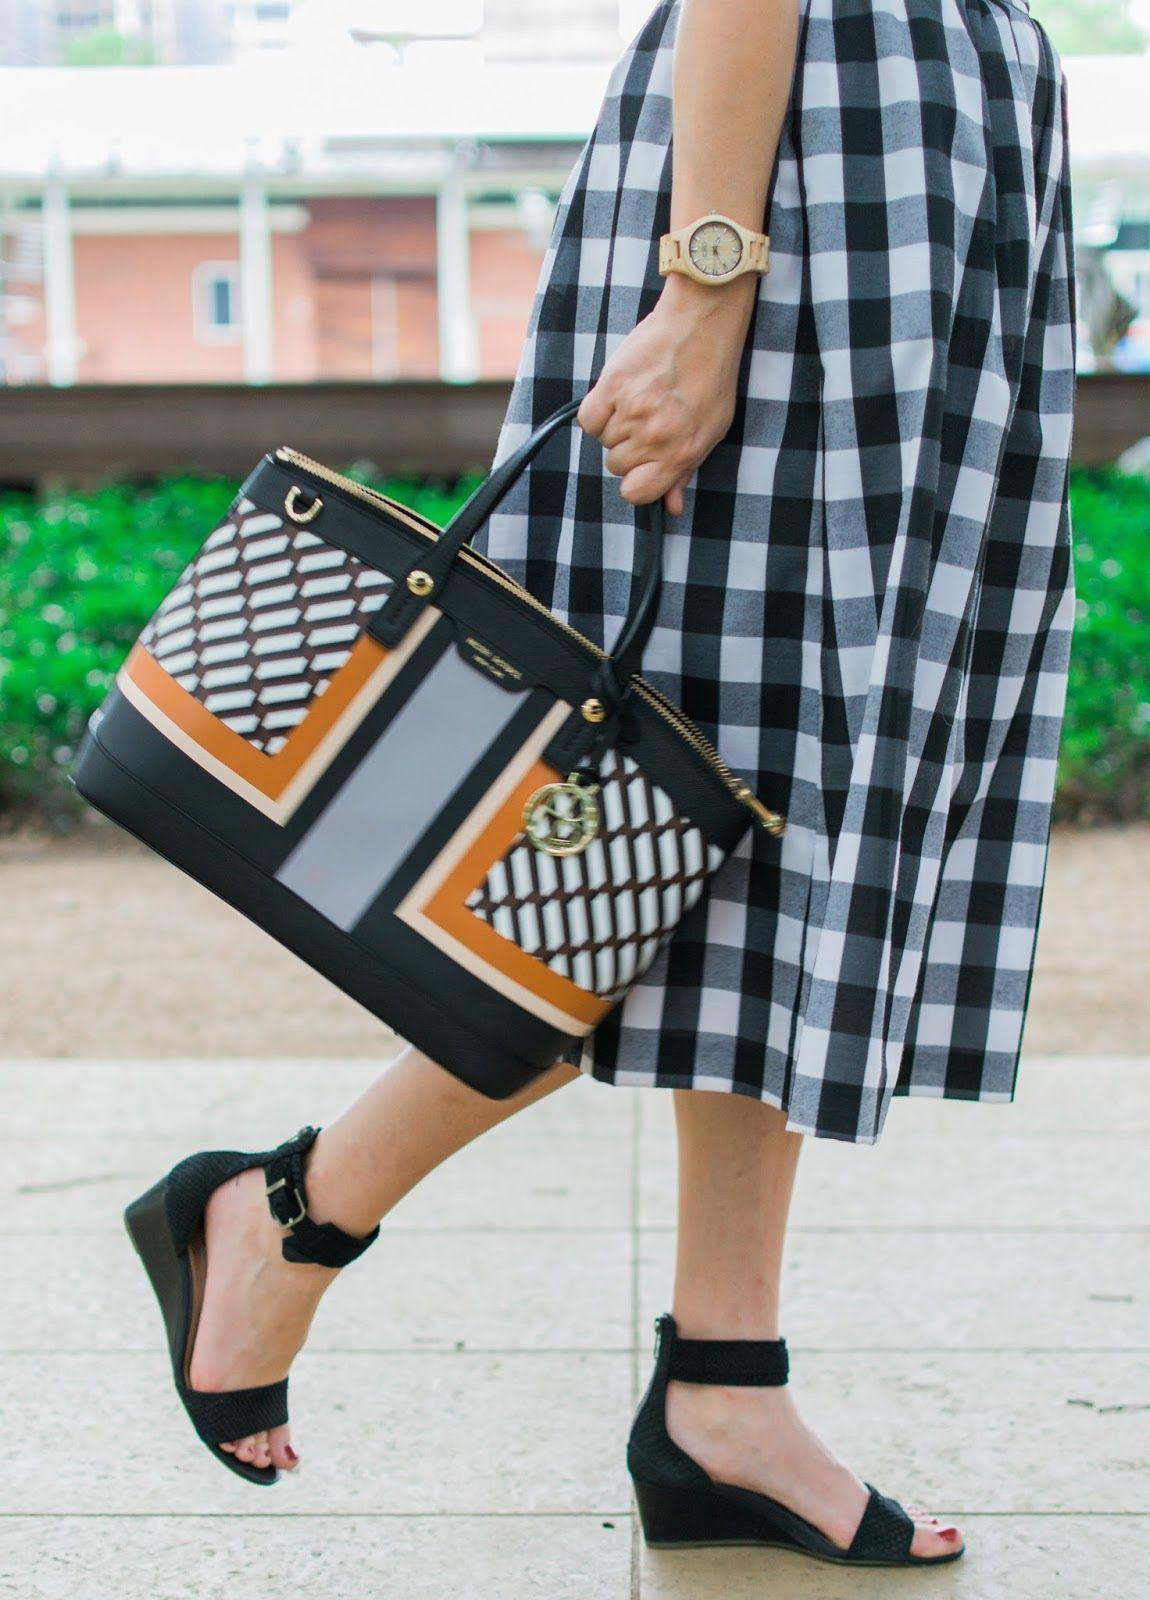 the Lone Star Looking Glass: Buffalo Plaid for Summer